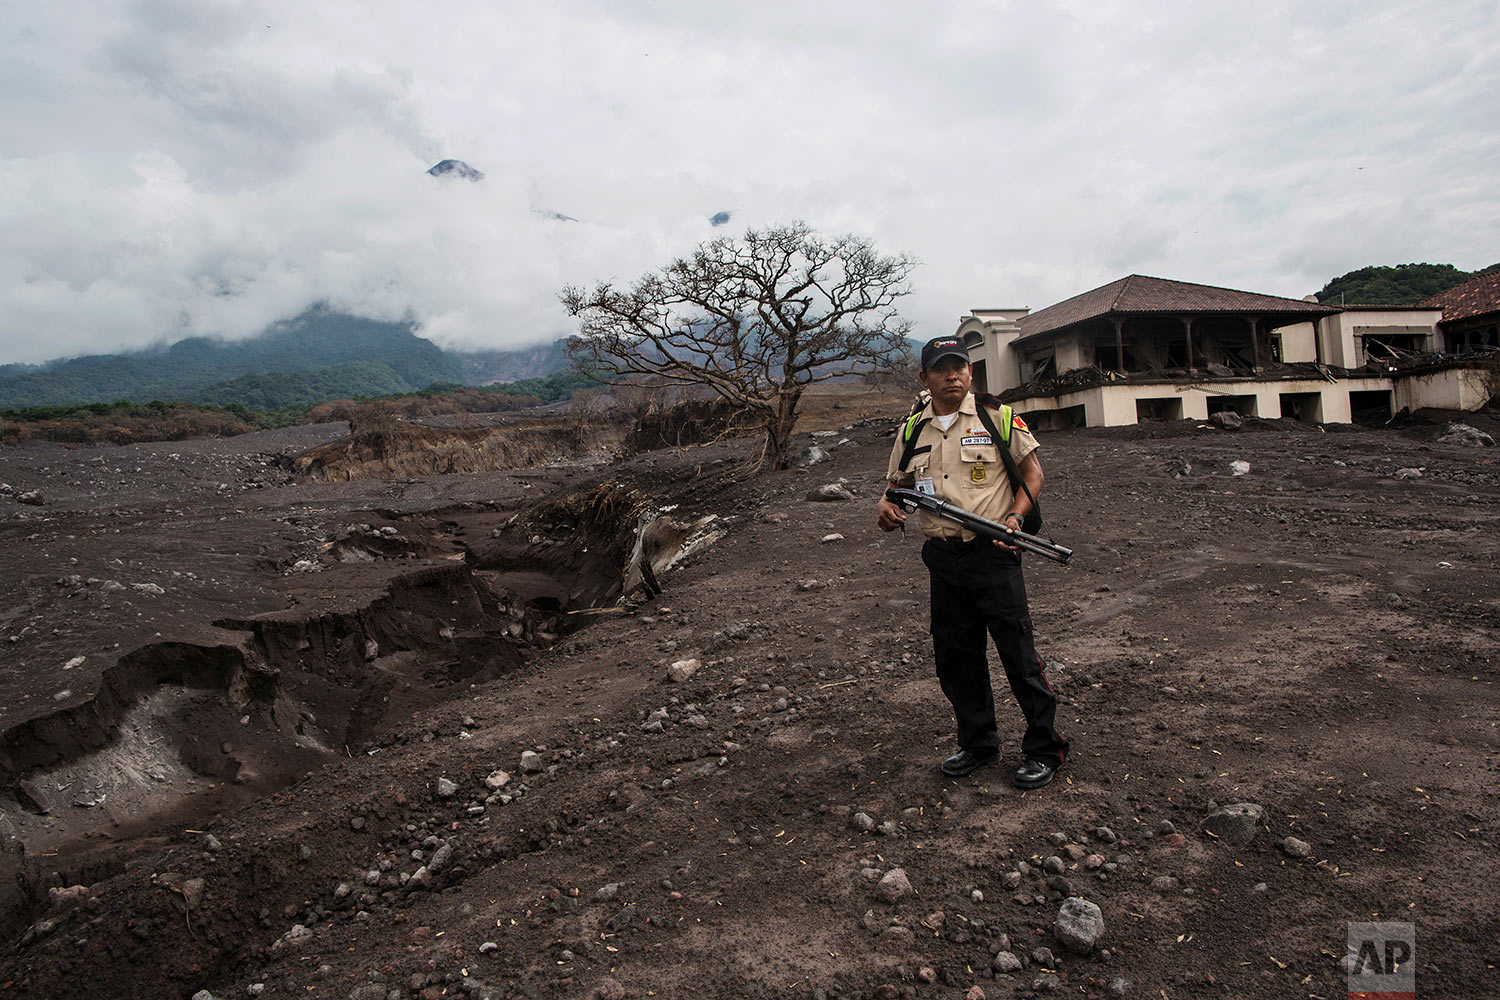 In this June 16, 2018 photo, a private security worker stands guard at La Reunion Golf Resort & Residences after the eruption of the Volcano of Fire in San Miguel Los Lotes, Guatemala. (AP Photo/Rodrigo Abd)